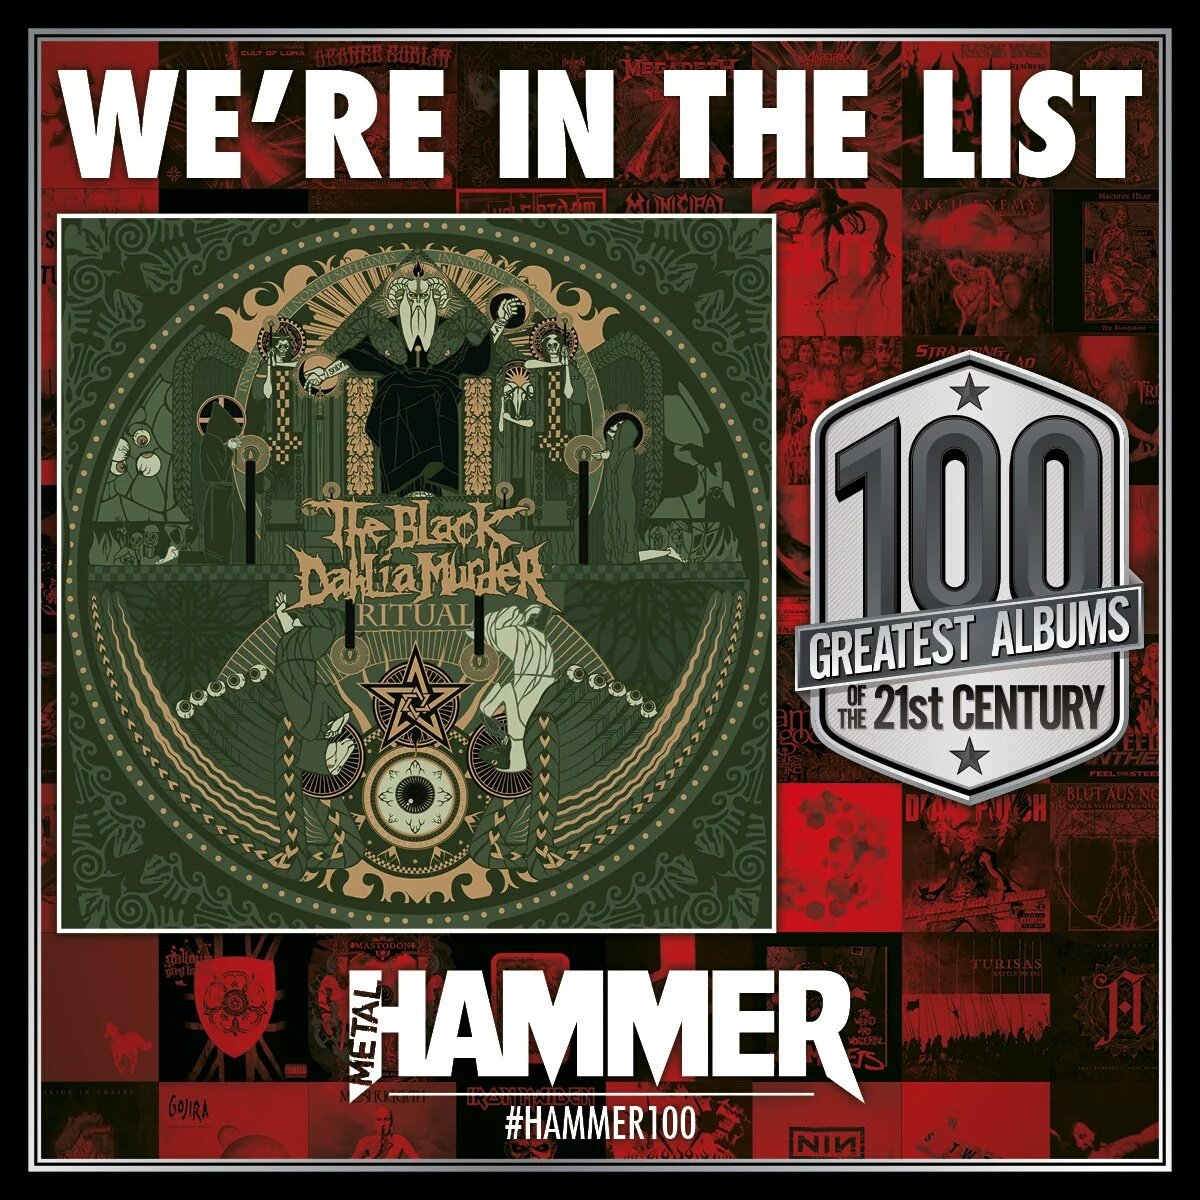 We're in @MetalHammer's list of the 100 best albums of the 21st Century.  #Hammer100 https://t.co/48rOpjLgBb